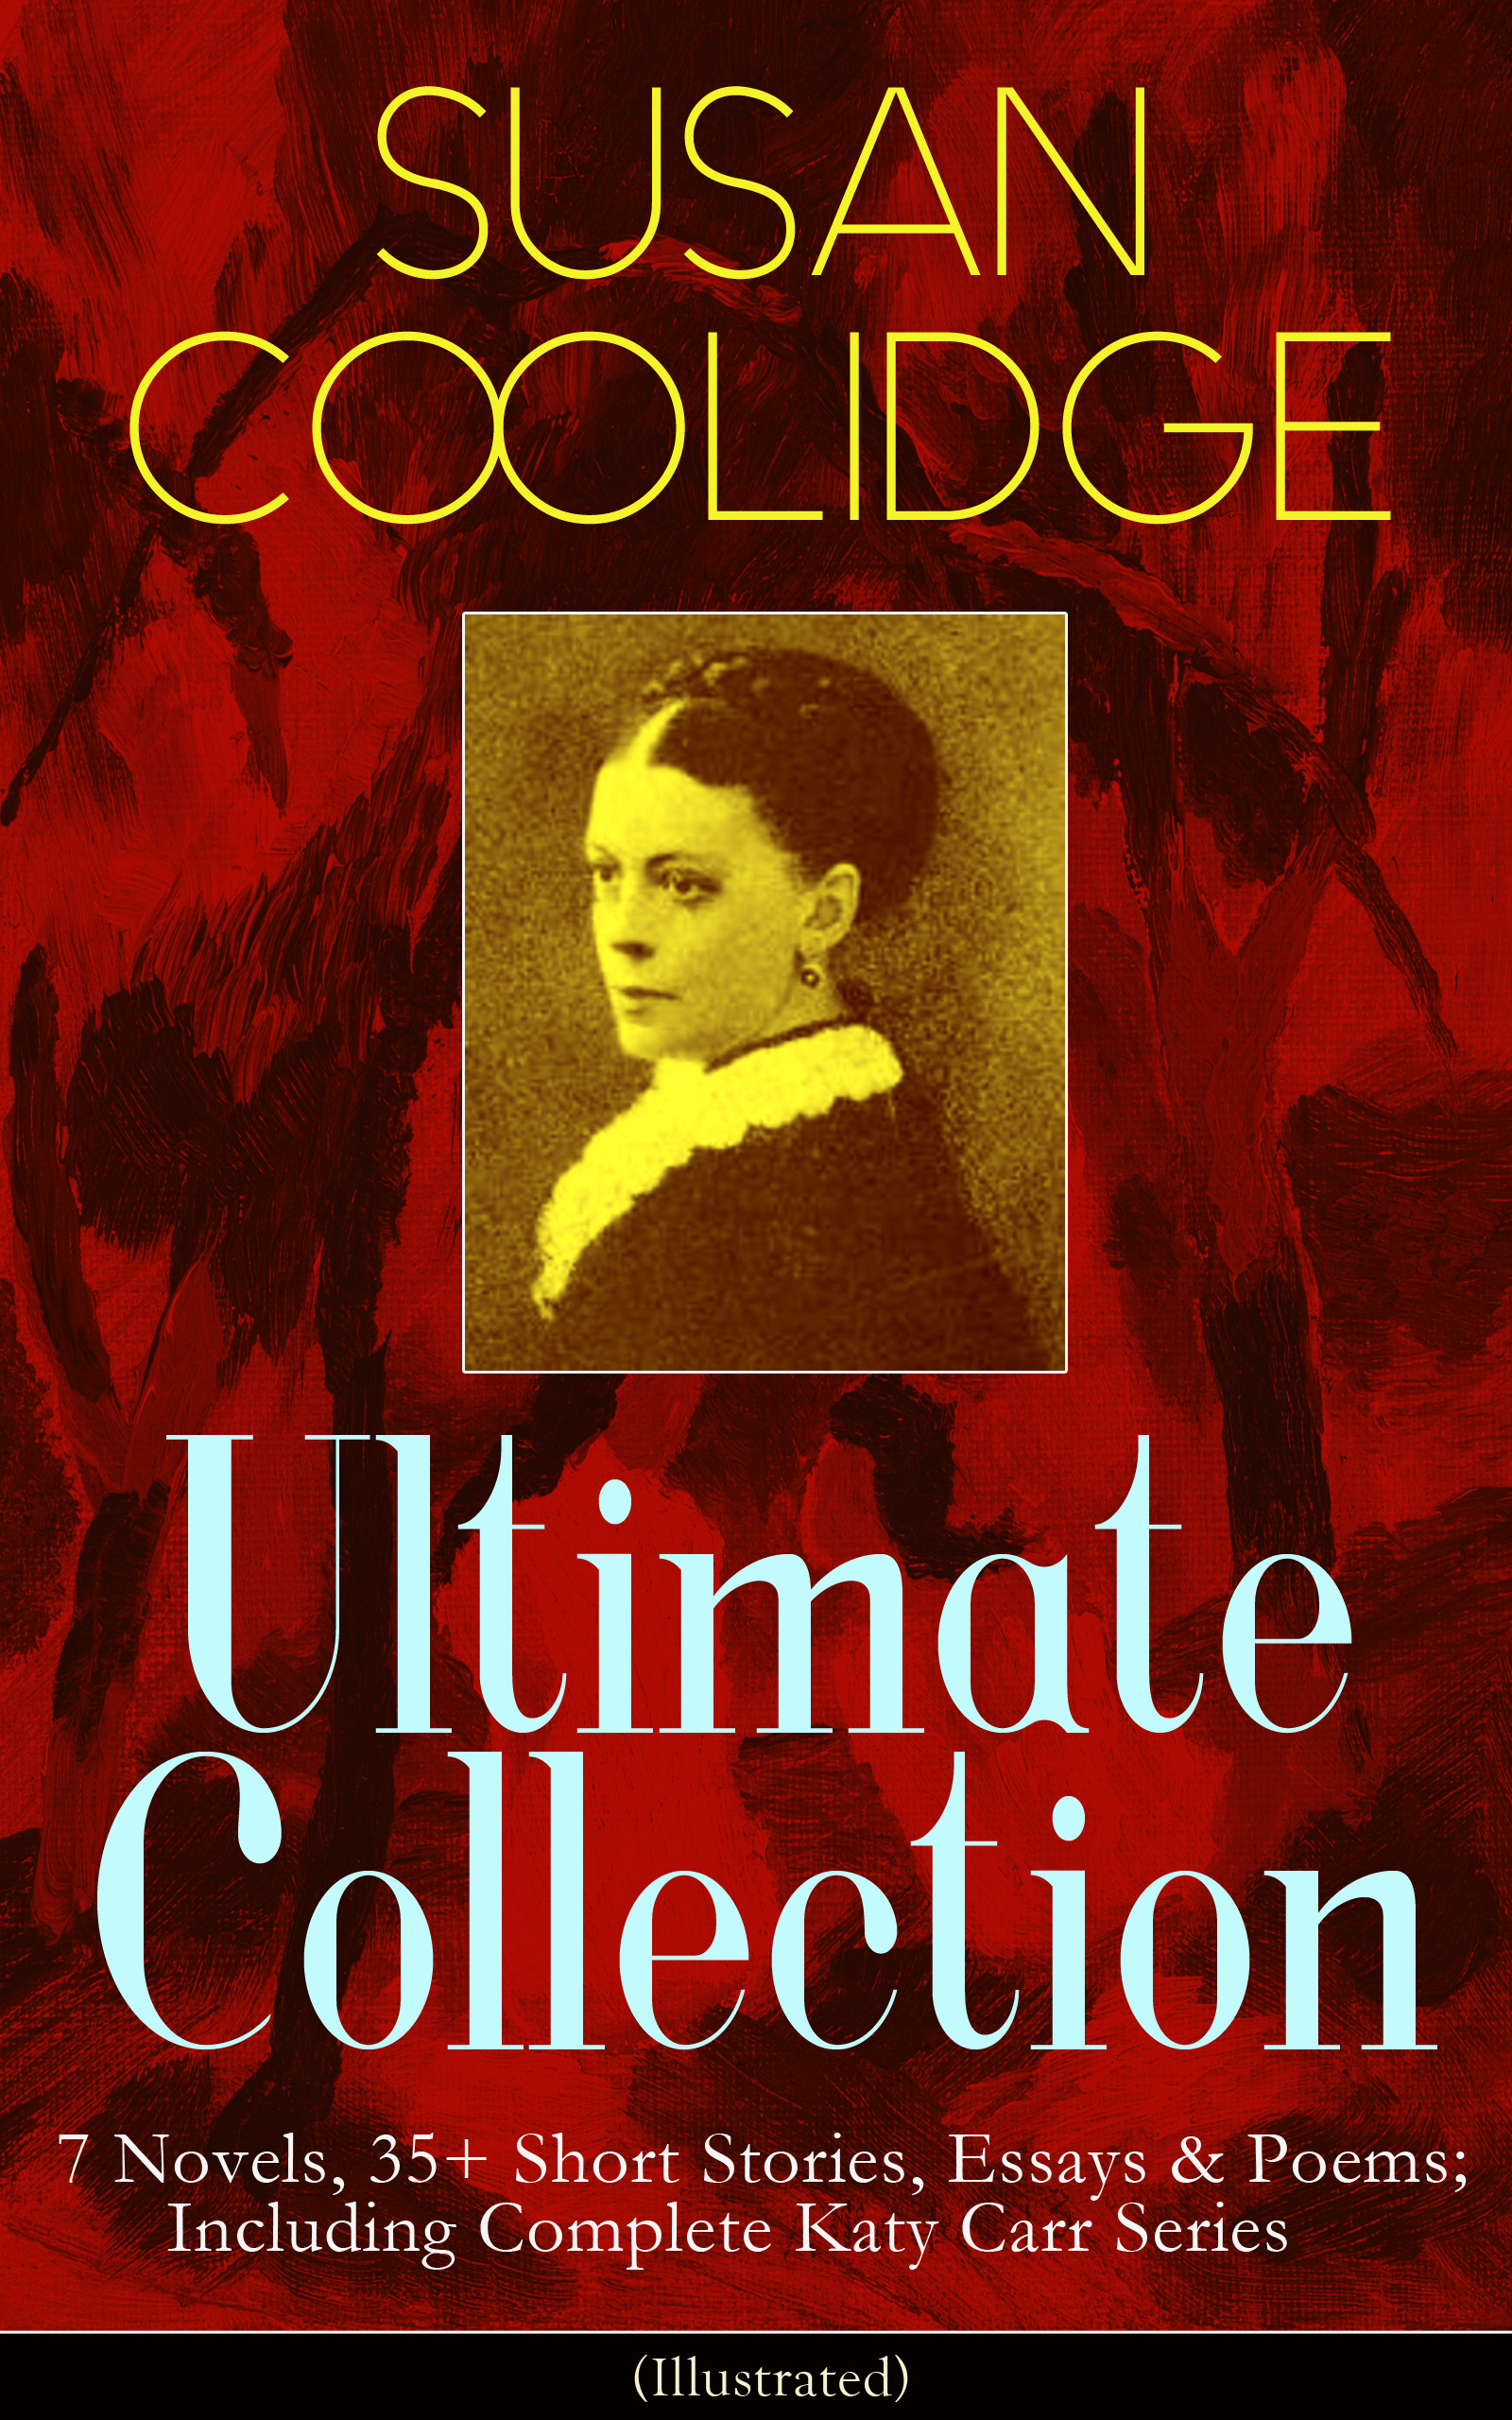 Susan Coolidge SUSAN COOLIDGE Ultimate Collection: 7 Novels, 35+ Short Stories, Essays & Poems; Including Complete Katy Carr Series (Illustrated) спот susan tl3760y 04bc